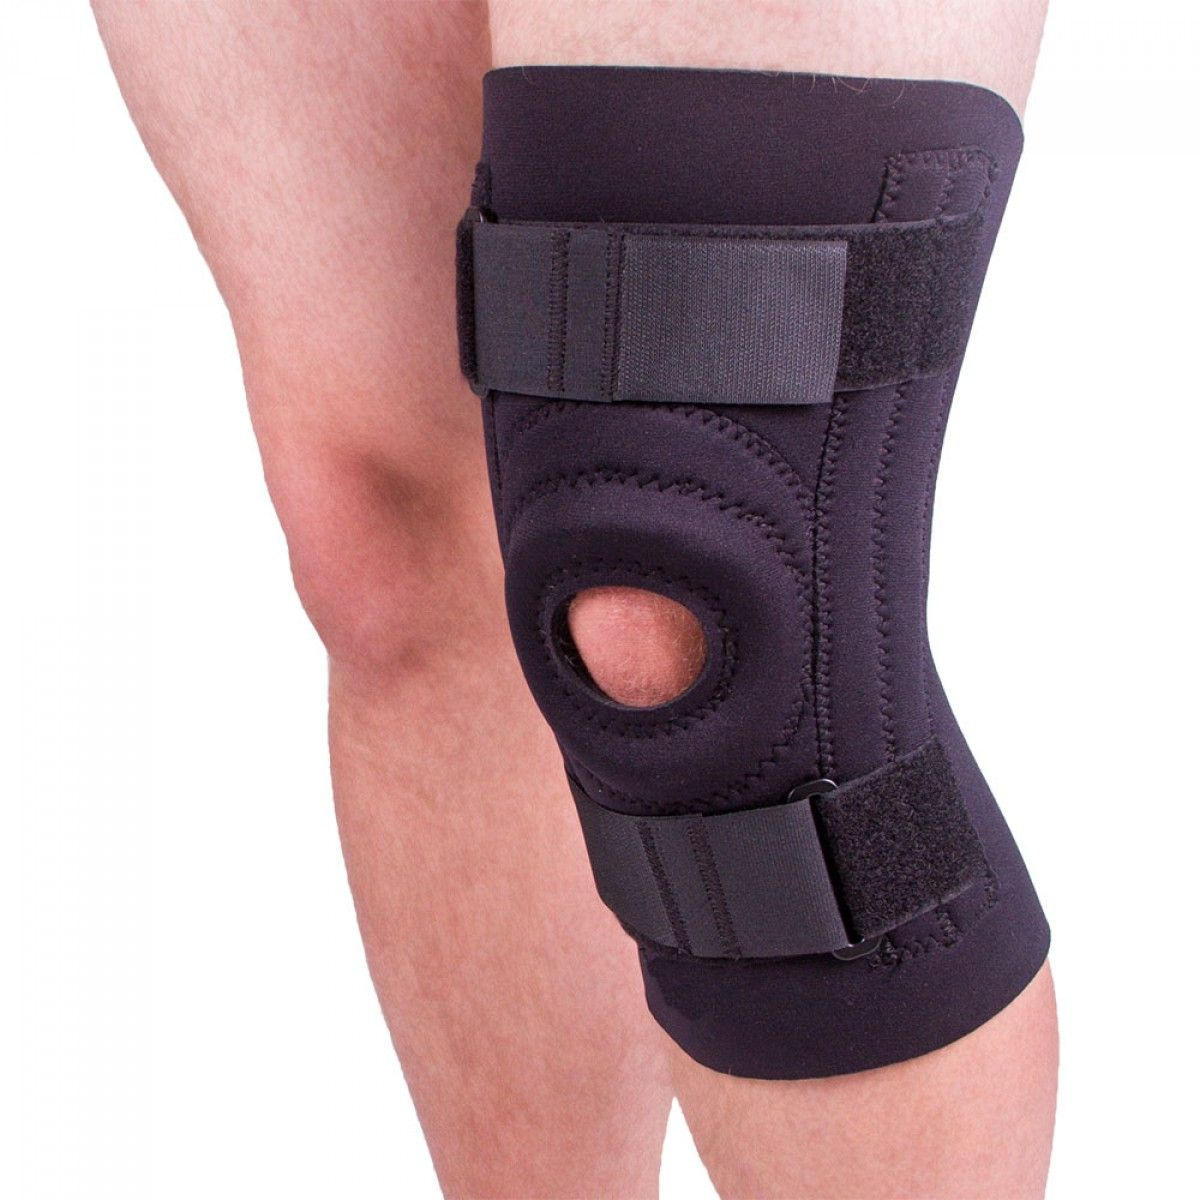 7f9771fe7ec This knee brace for larger people with big legs   thighs has an easy